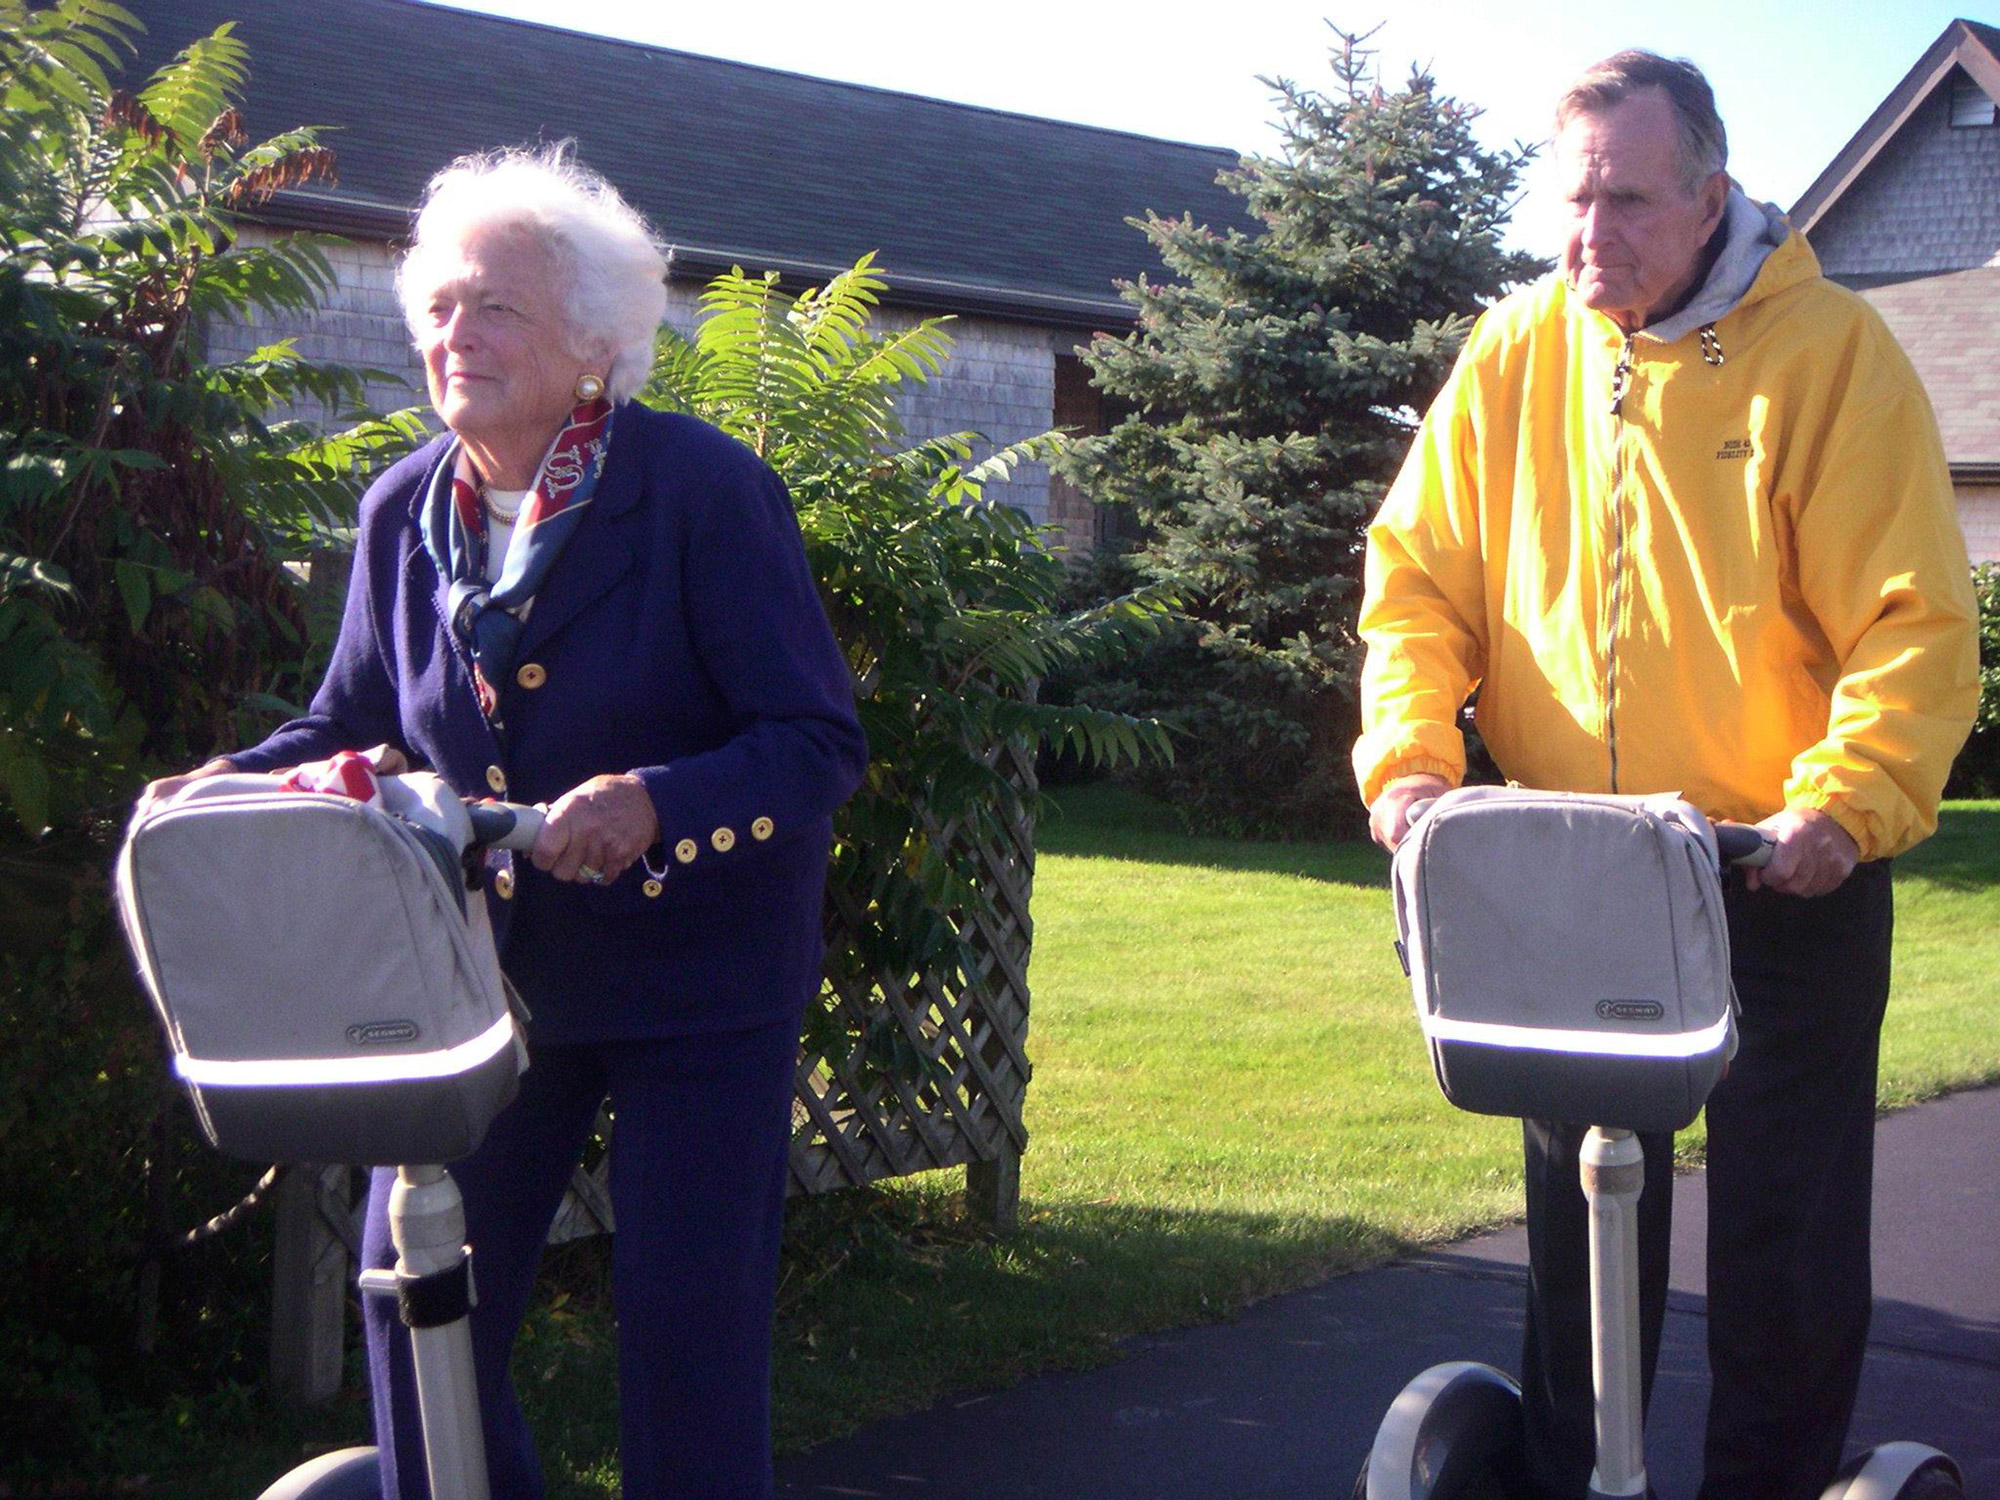 Just for the fun of it, the Bushes had their own mock Summer Olympics in 2004. Here they compete in the hotly contested Segway race, won by Mrs. Bush. CBS Sportscaster Jim Nantz showed the video during an NFL broadcast that fall.